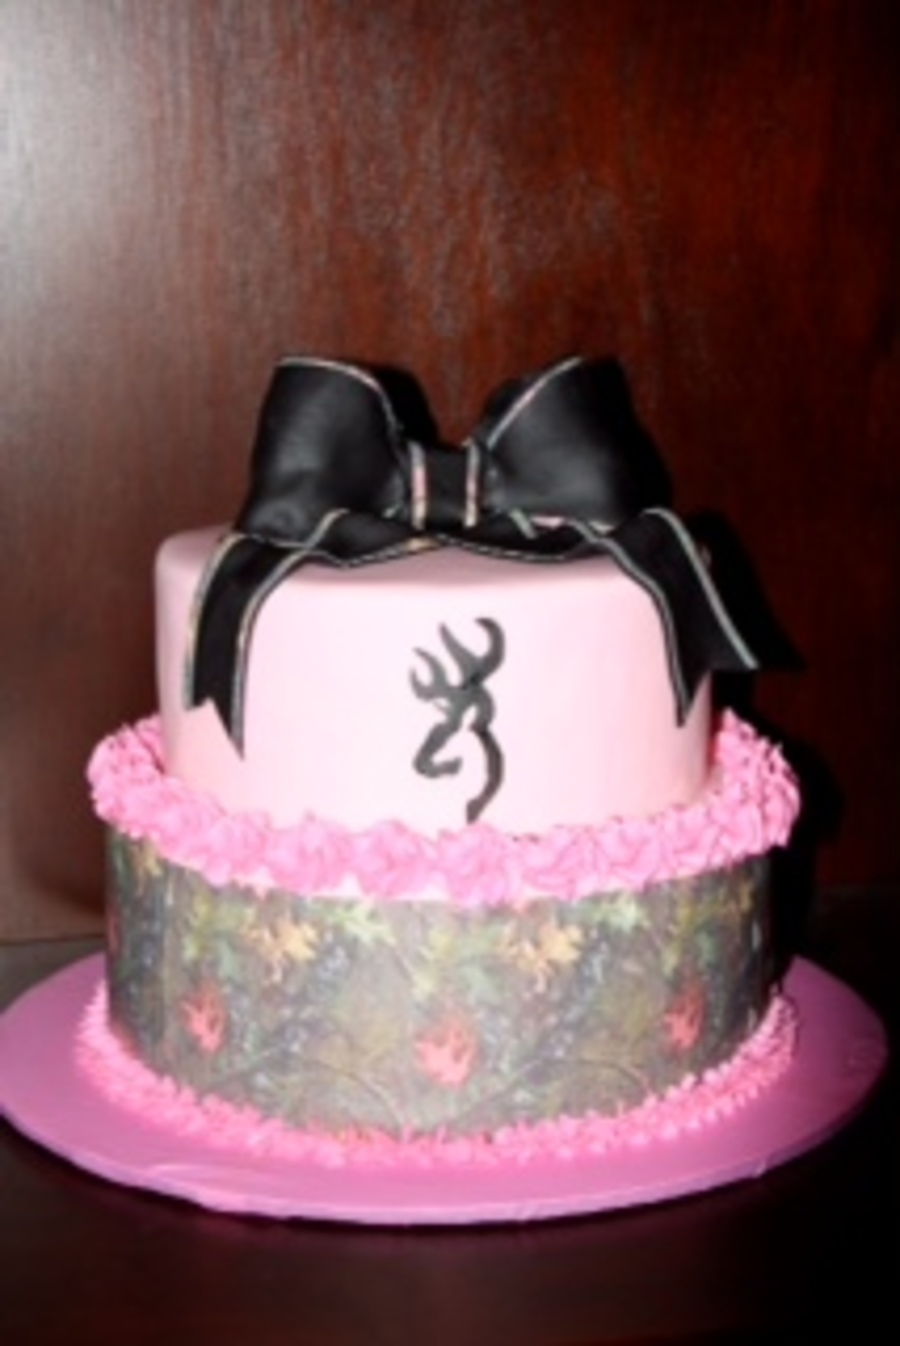 Best Friend Birthday Cakes Cakecentral Com